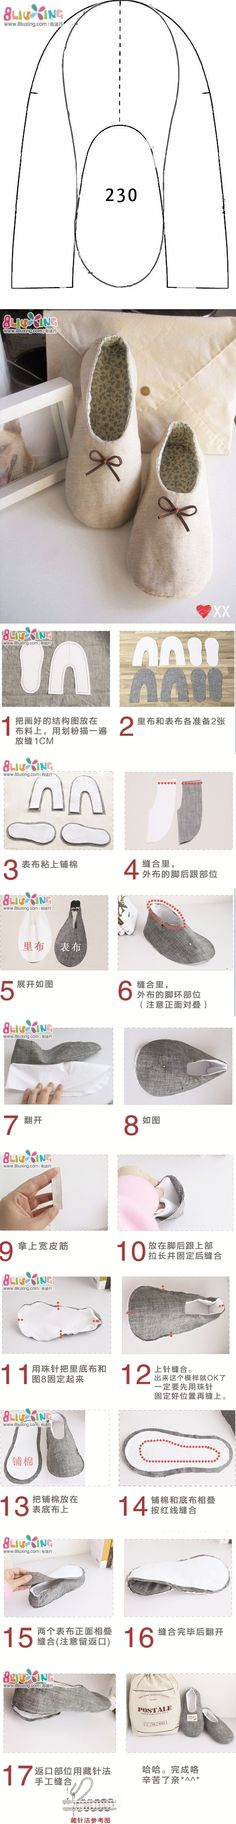 slippers tutorial